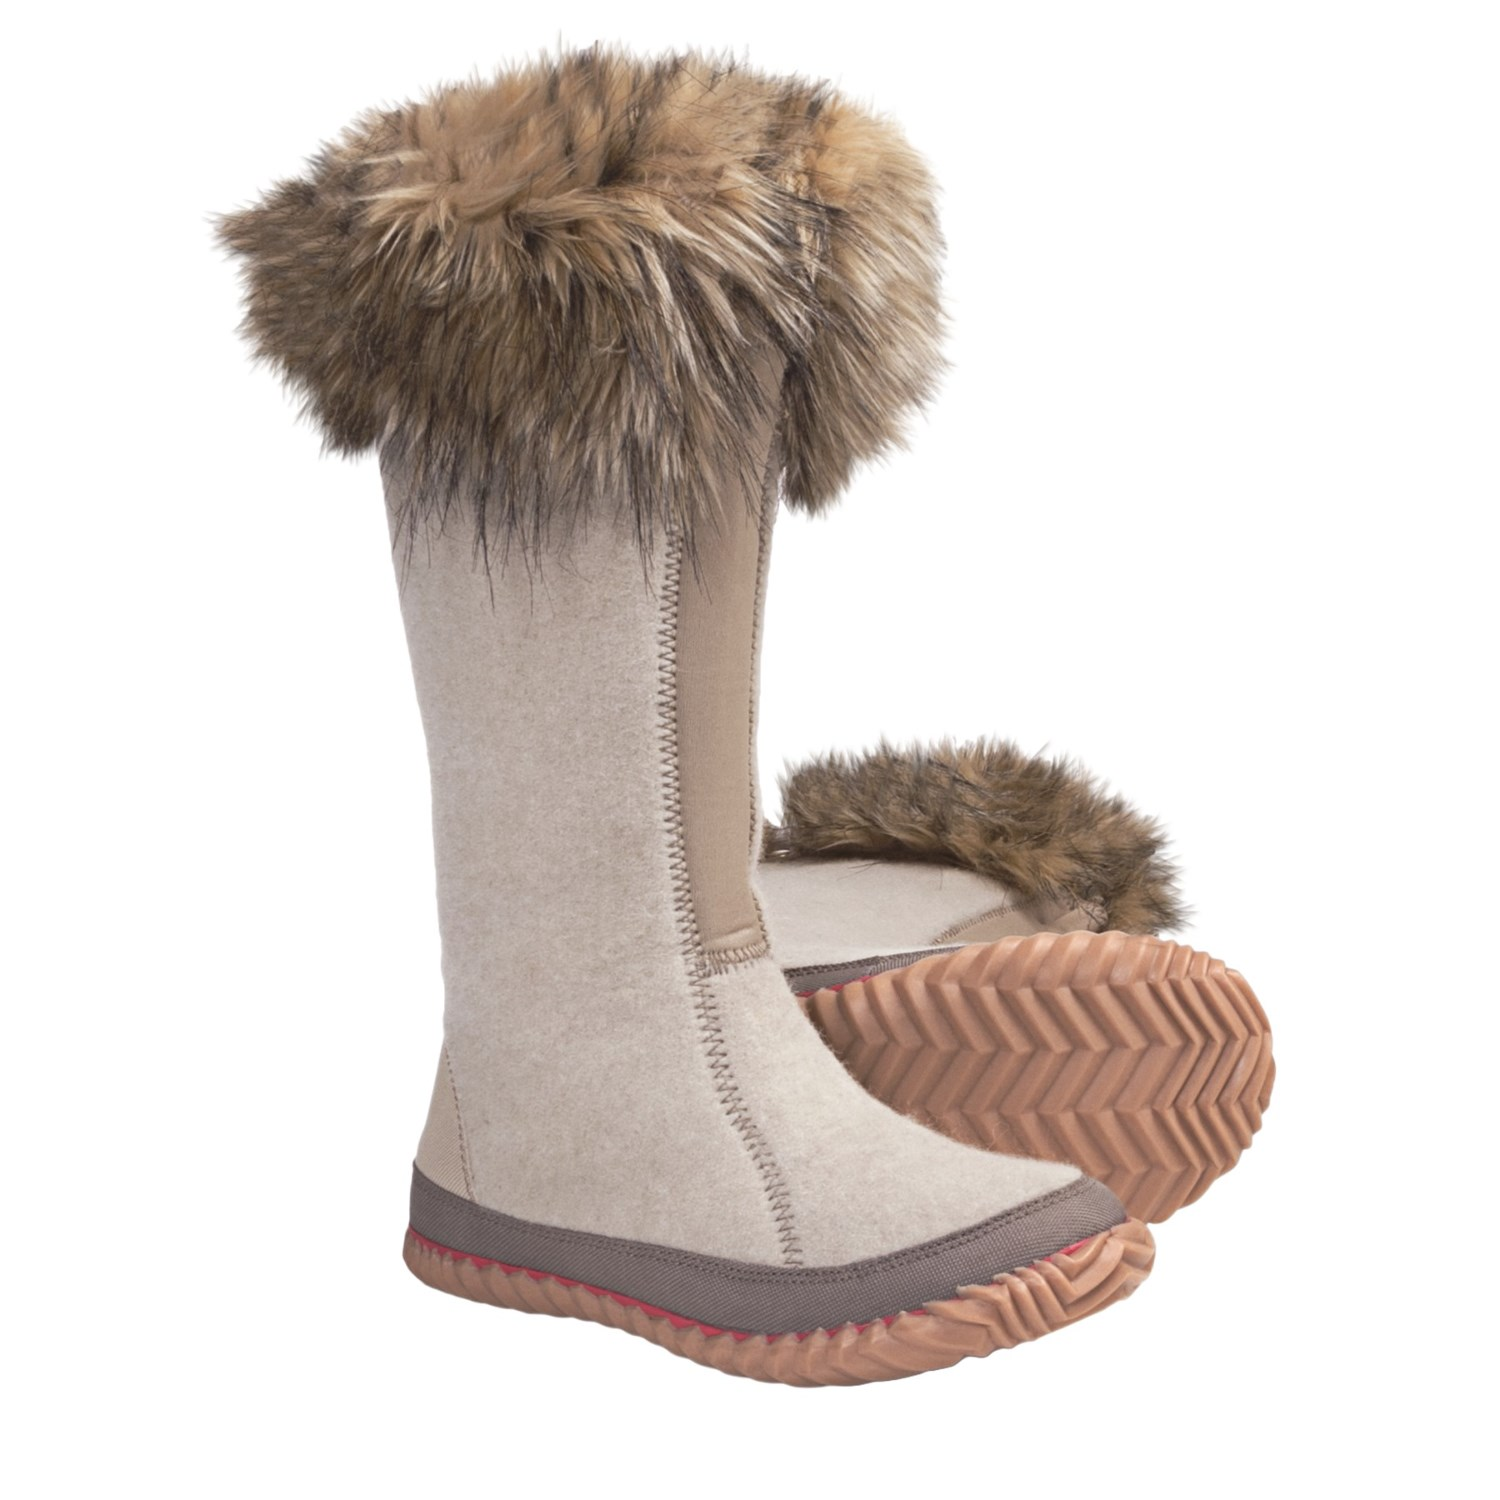 Sorel Boots Size Up Or Down